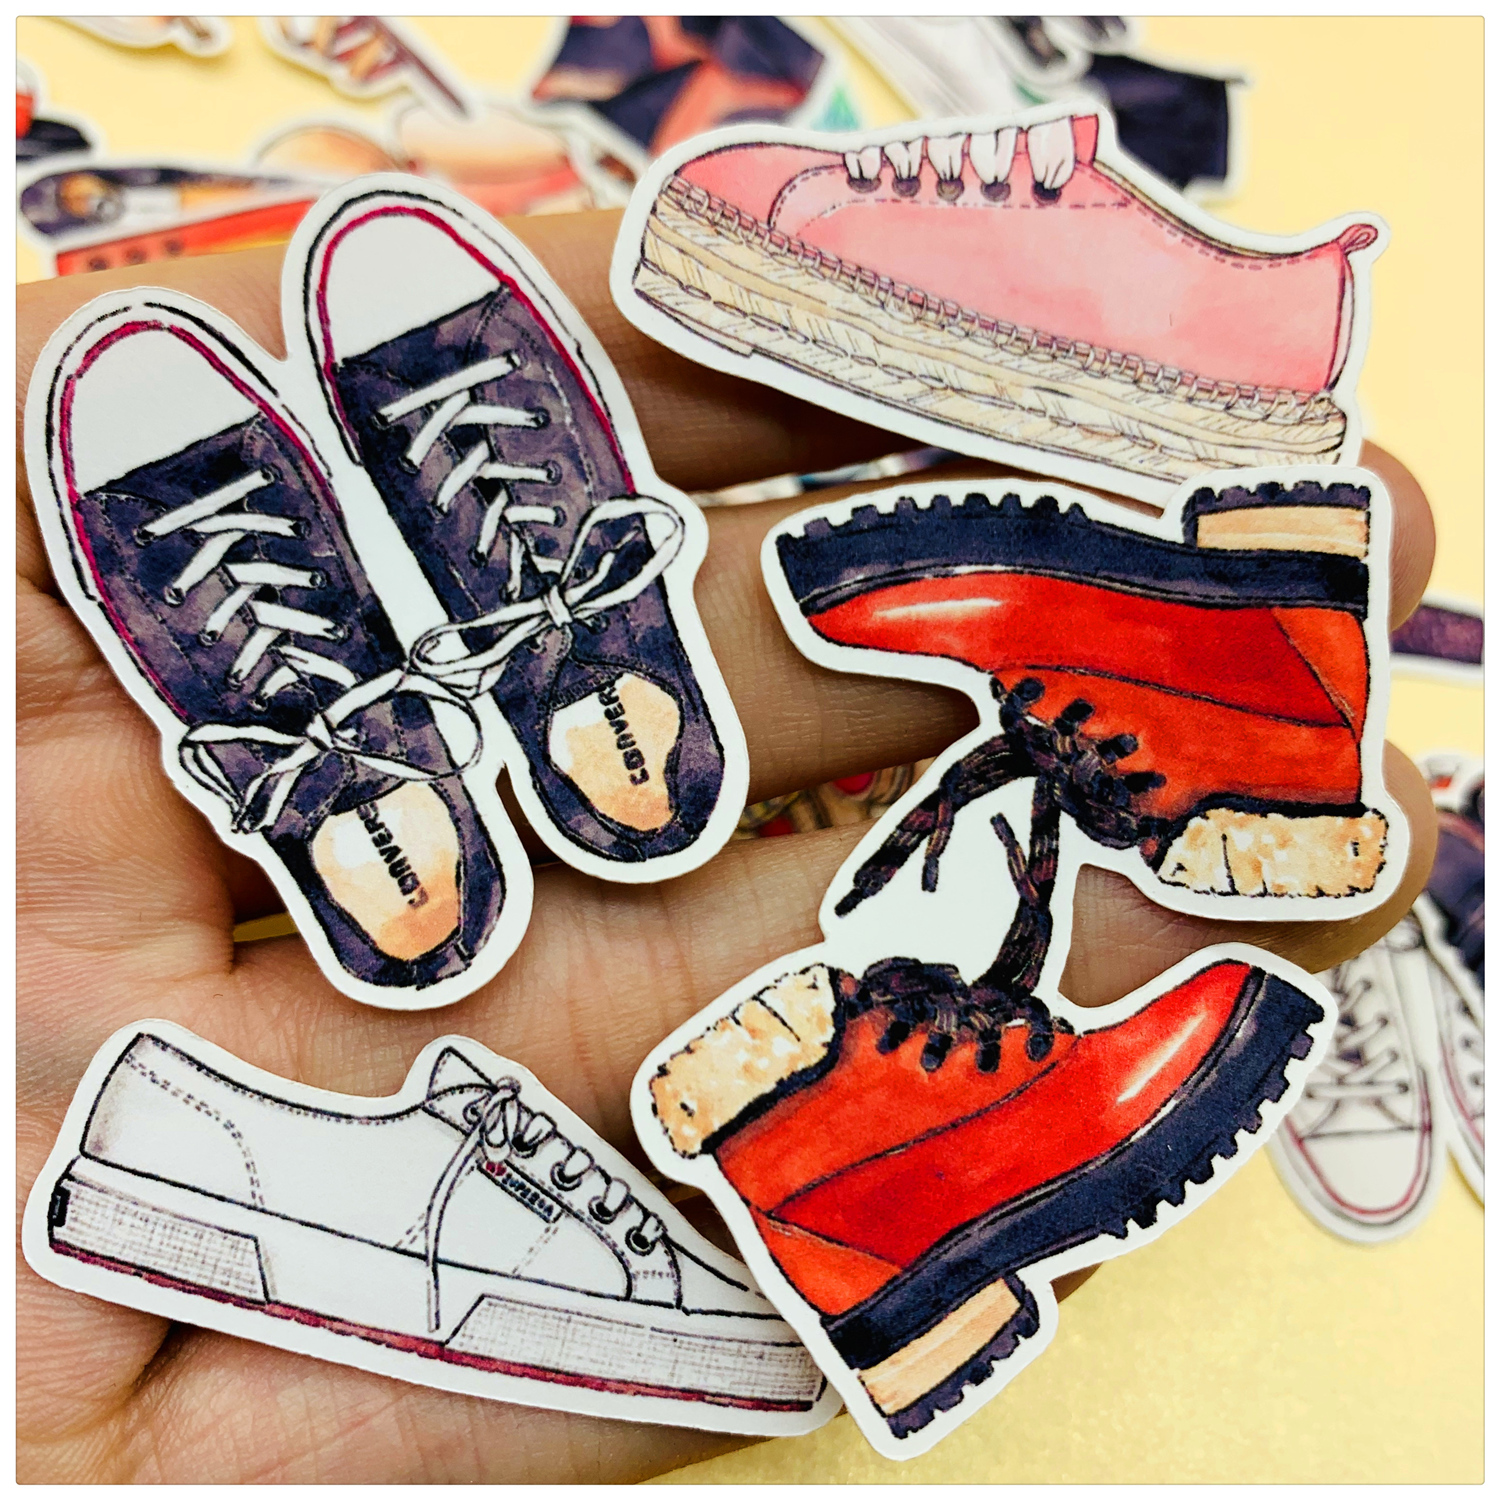 37pcs Hand Drawing Handbook Sticker Pack Hand-painted Gym Shoes Sandals Sticker Decoration Diary Decoration To Adopt Advanced Technology